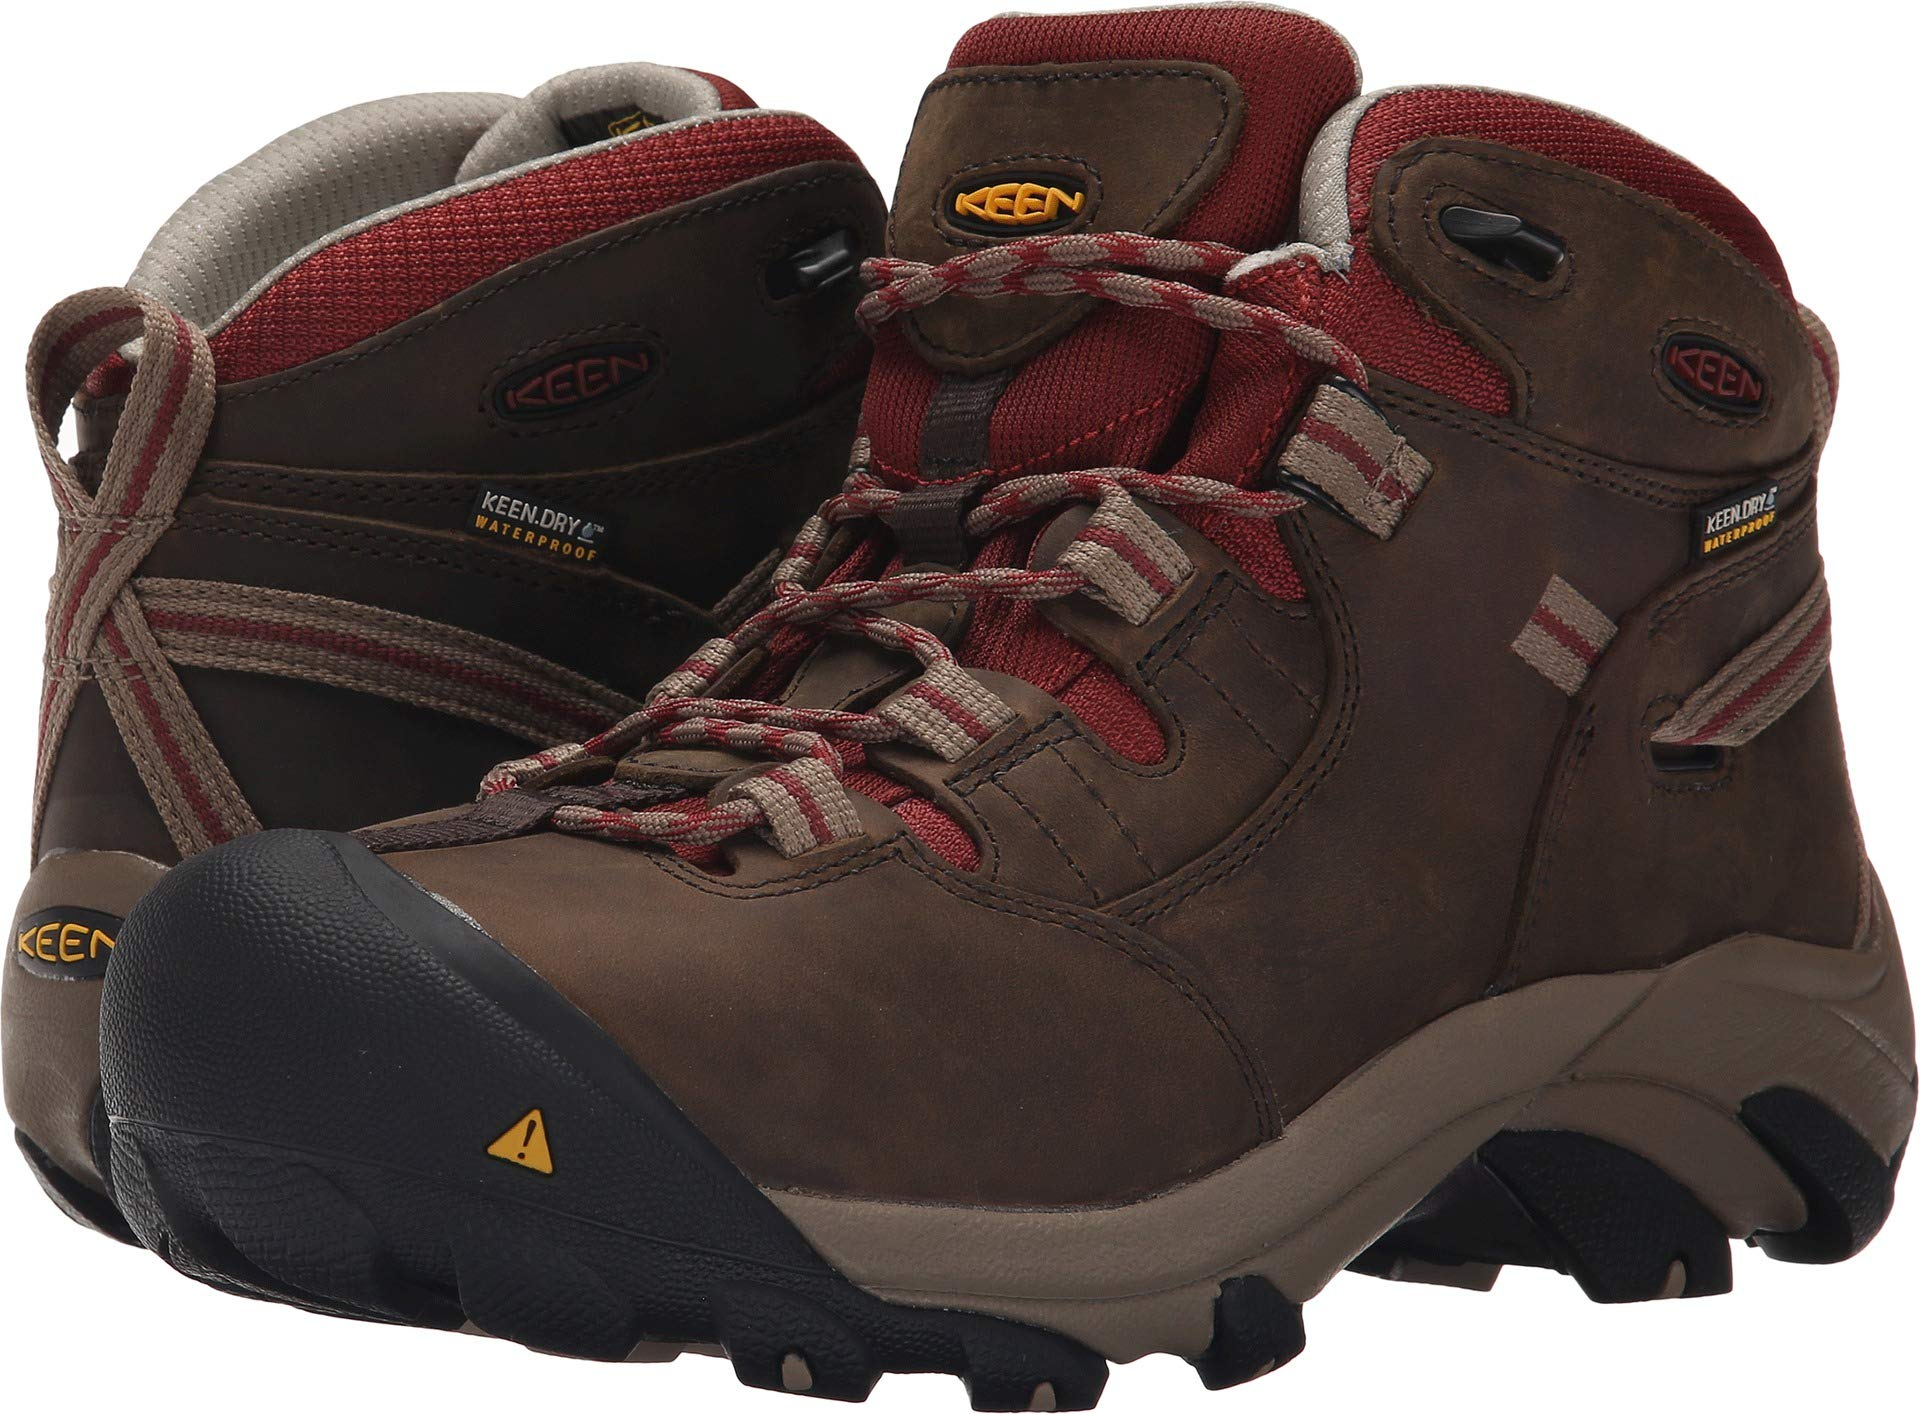 KEEN Utility Women's Detroit Mid Steel Toe Work Boot,Black Olive/Madder Brown,5 W US by KEEN Utility